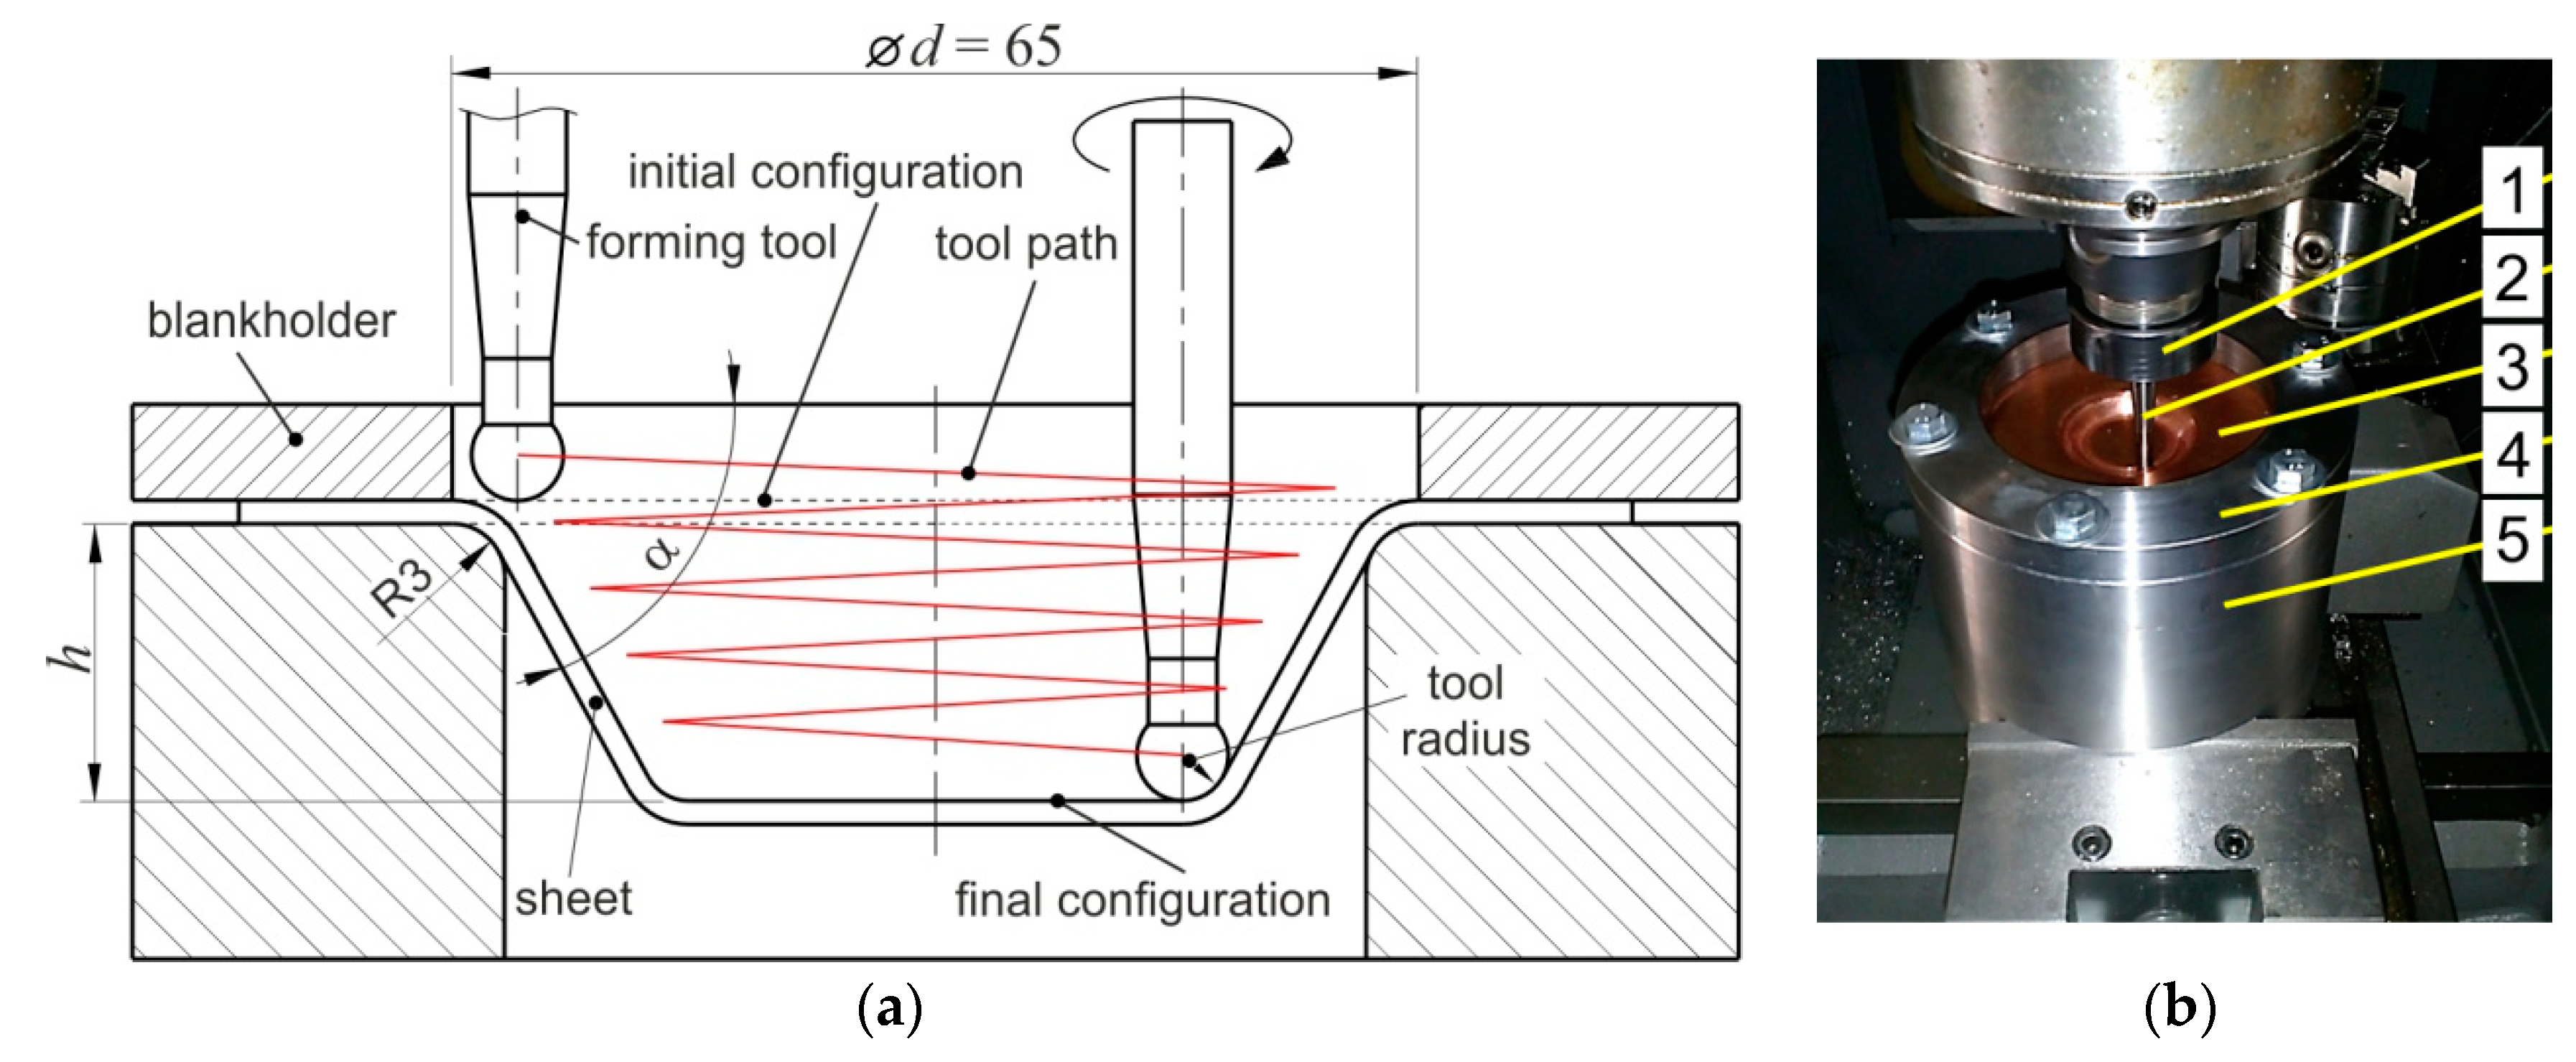 Metals Free Full Text Residual Stresses And Surface Roughness Analysis Of Truncated Cones Of Steel Sheet Made By Single Point Incremental Forming Html